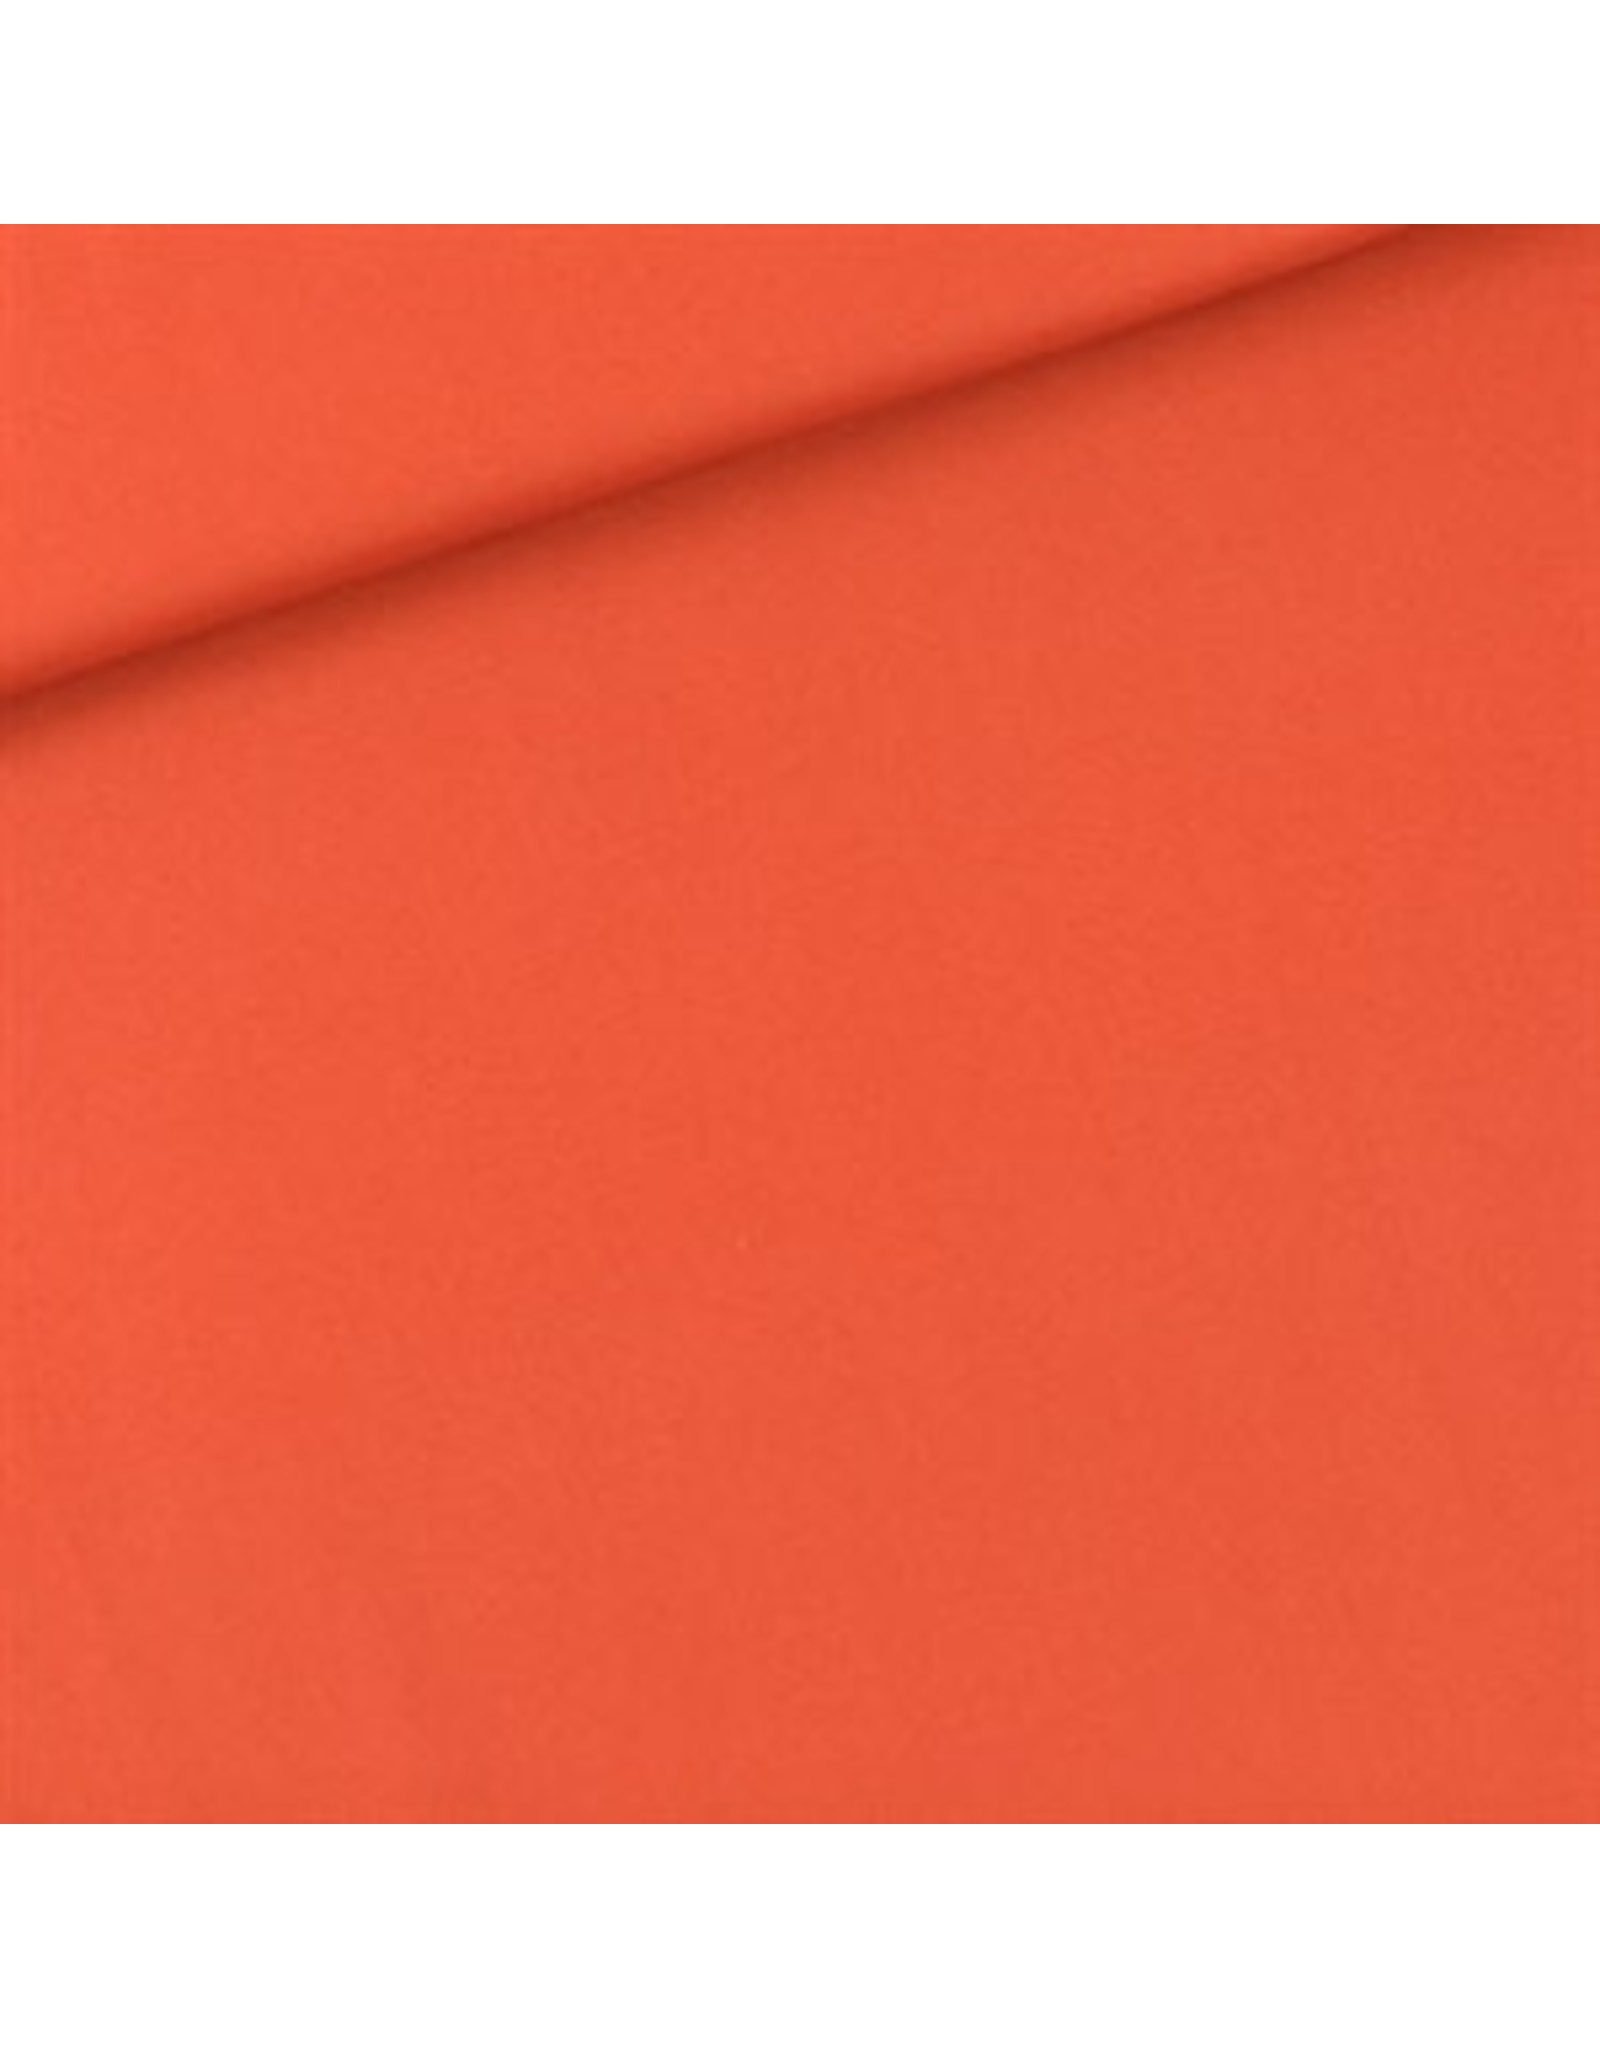 See You At Six Cotton gabardine twill ginger spice COUPON 1.30m